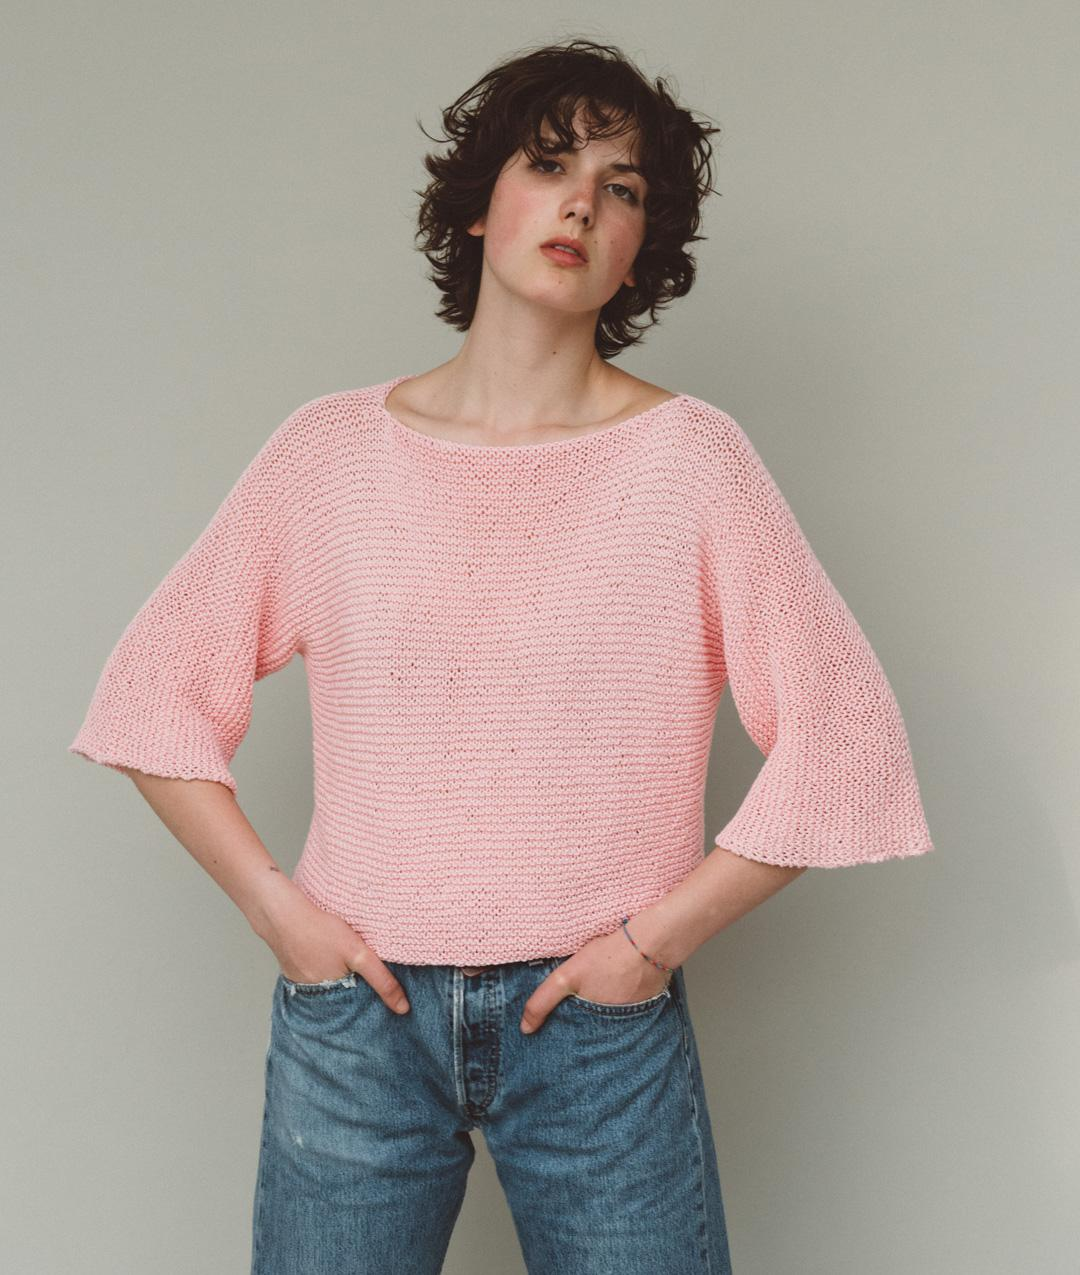 Sweaters and Tops - Cotton - Tulip T-Shirt - 1